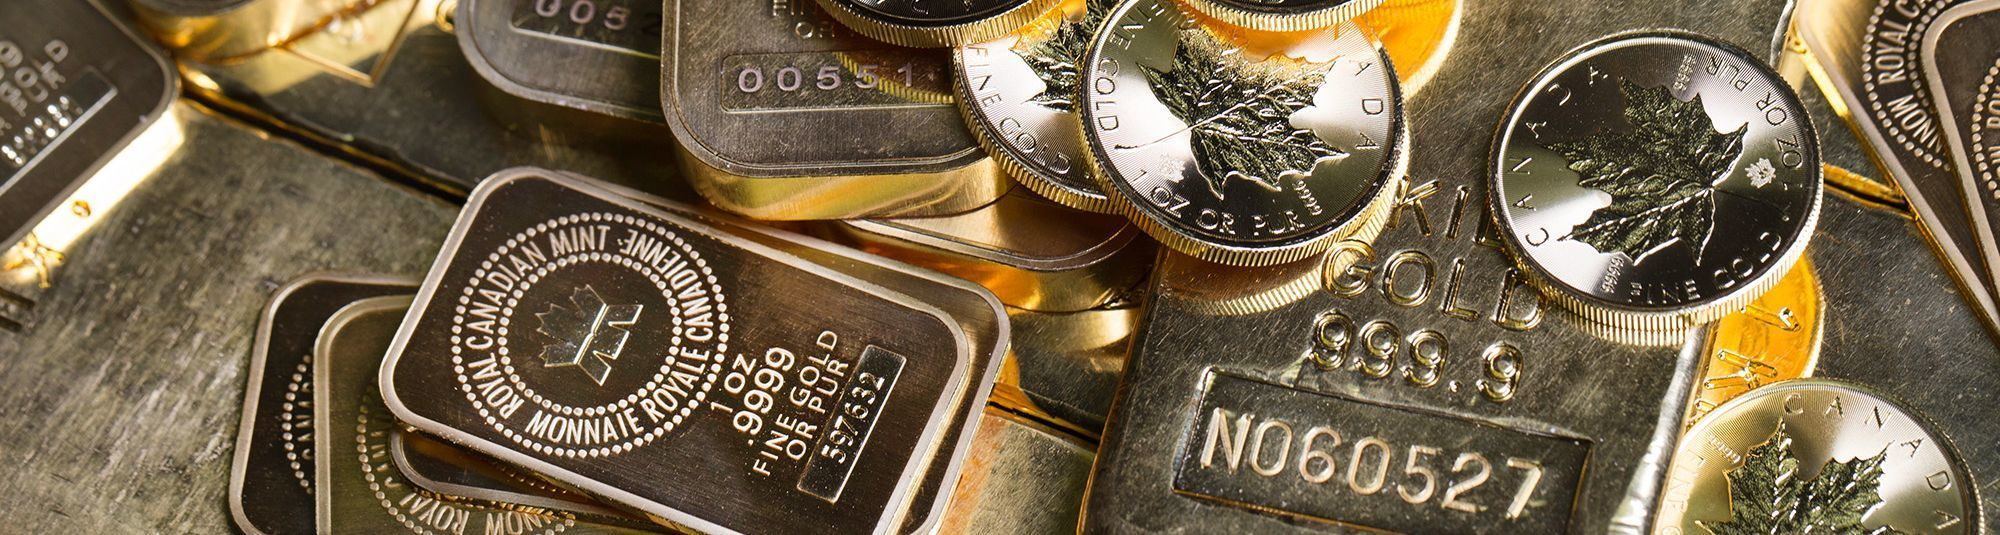 Buy & Sell Gold, Silver, Platinum in Vancouver - Bullion